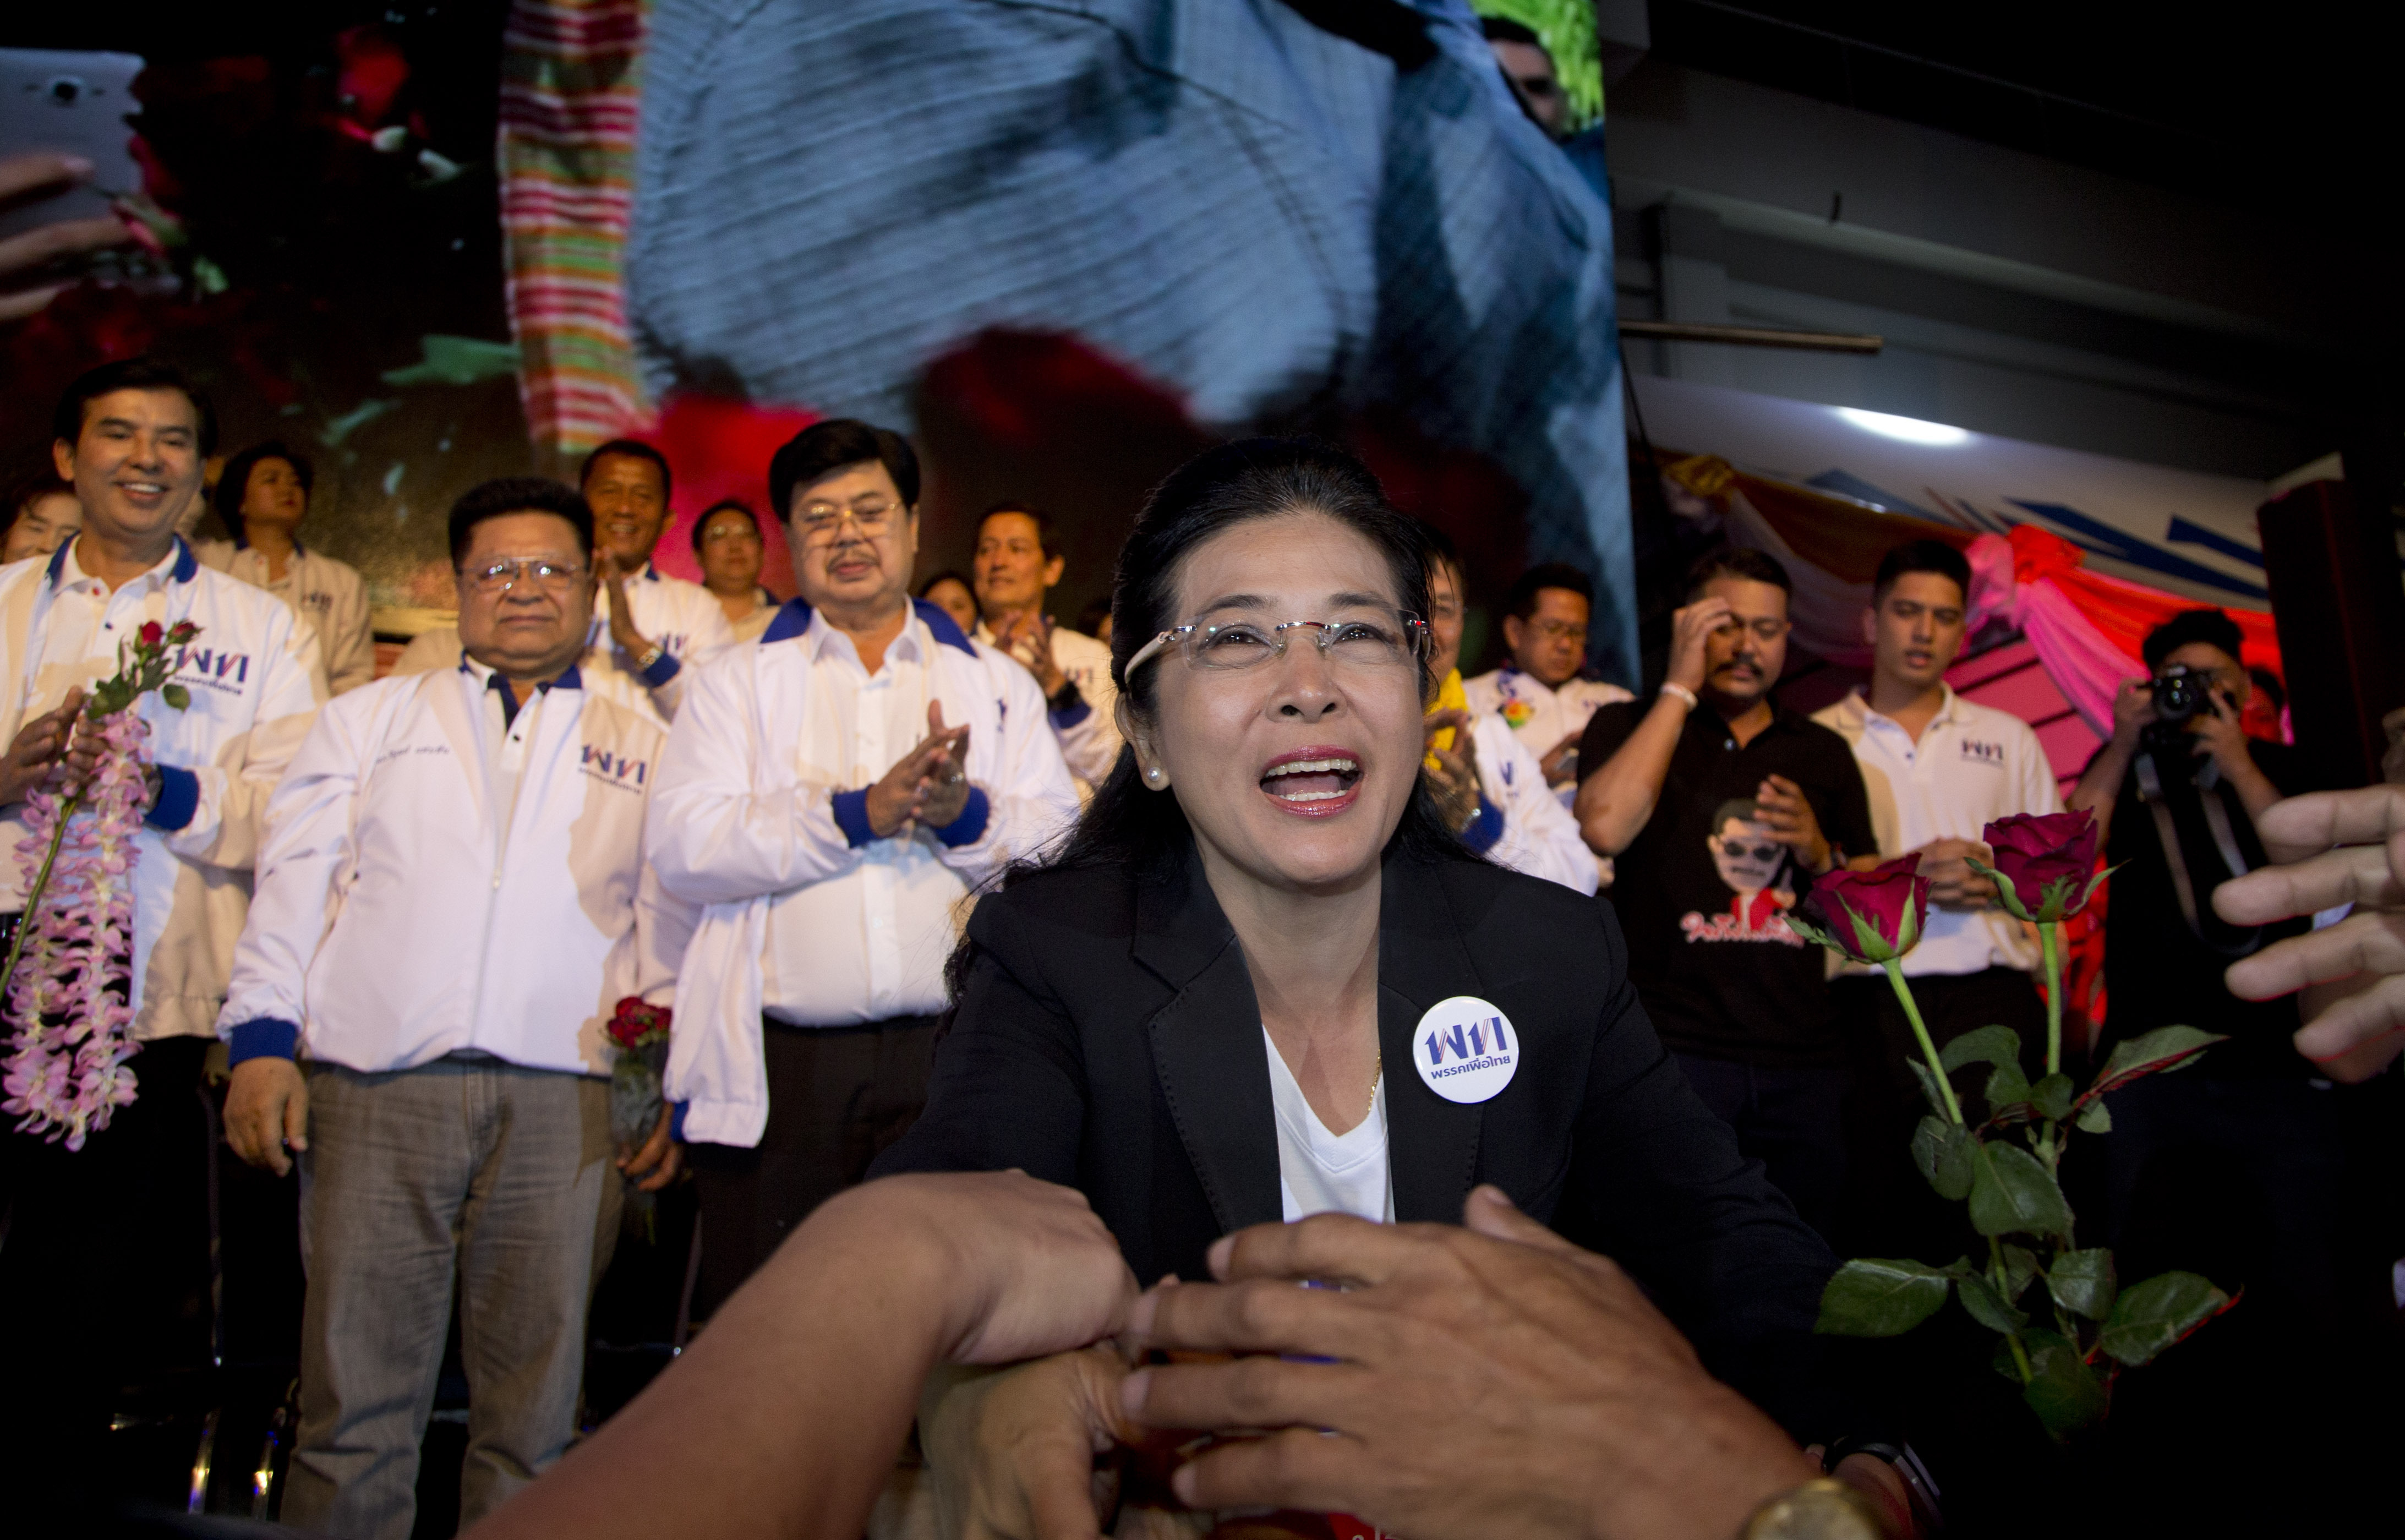 The leader of Pheu Thai Party and candidate for prime minister Sudarat Keyuraphan reaches to shake hands of supporters during an election rally concluding their campaign ahead of general election in Bangkok, Thailand, Friday, March 22, 2019. The nation's first general election since the military seized power in a 2014 coup is scheduled to be held on March 24. (AP Photo/Gemunu Amarasinghe)